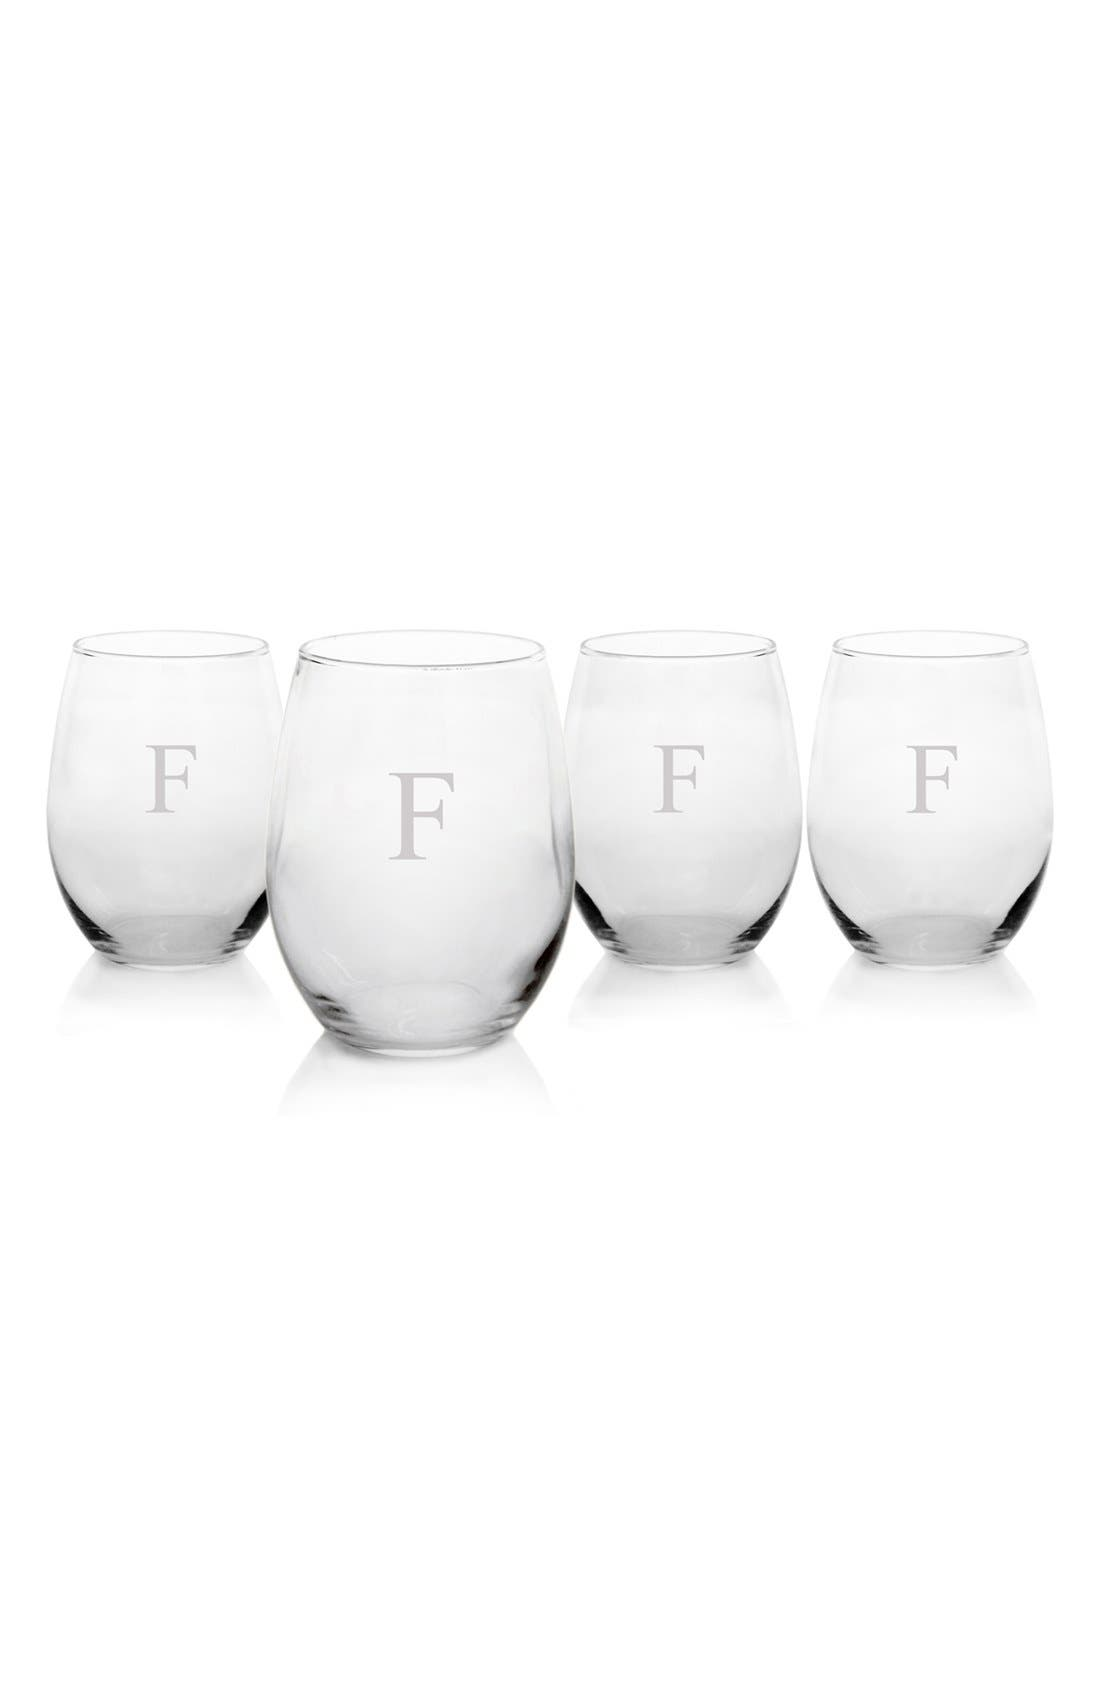 Monogram Set of 4 Stemless Wine Glasses,                         Main,                         color, 965